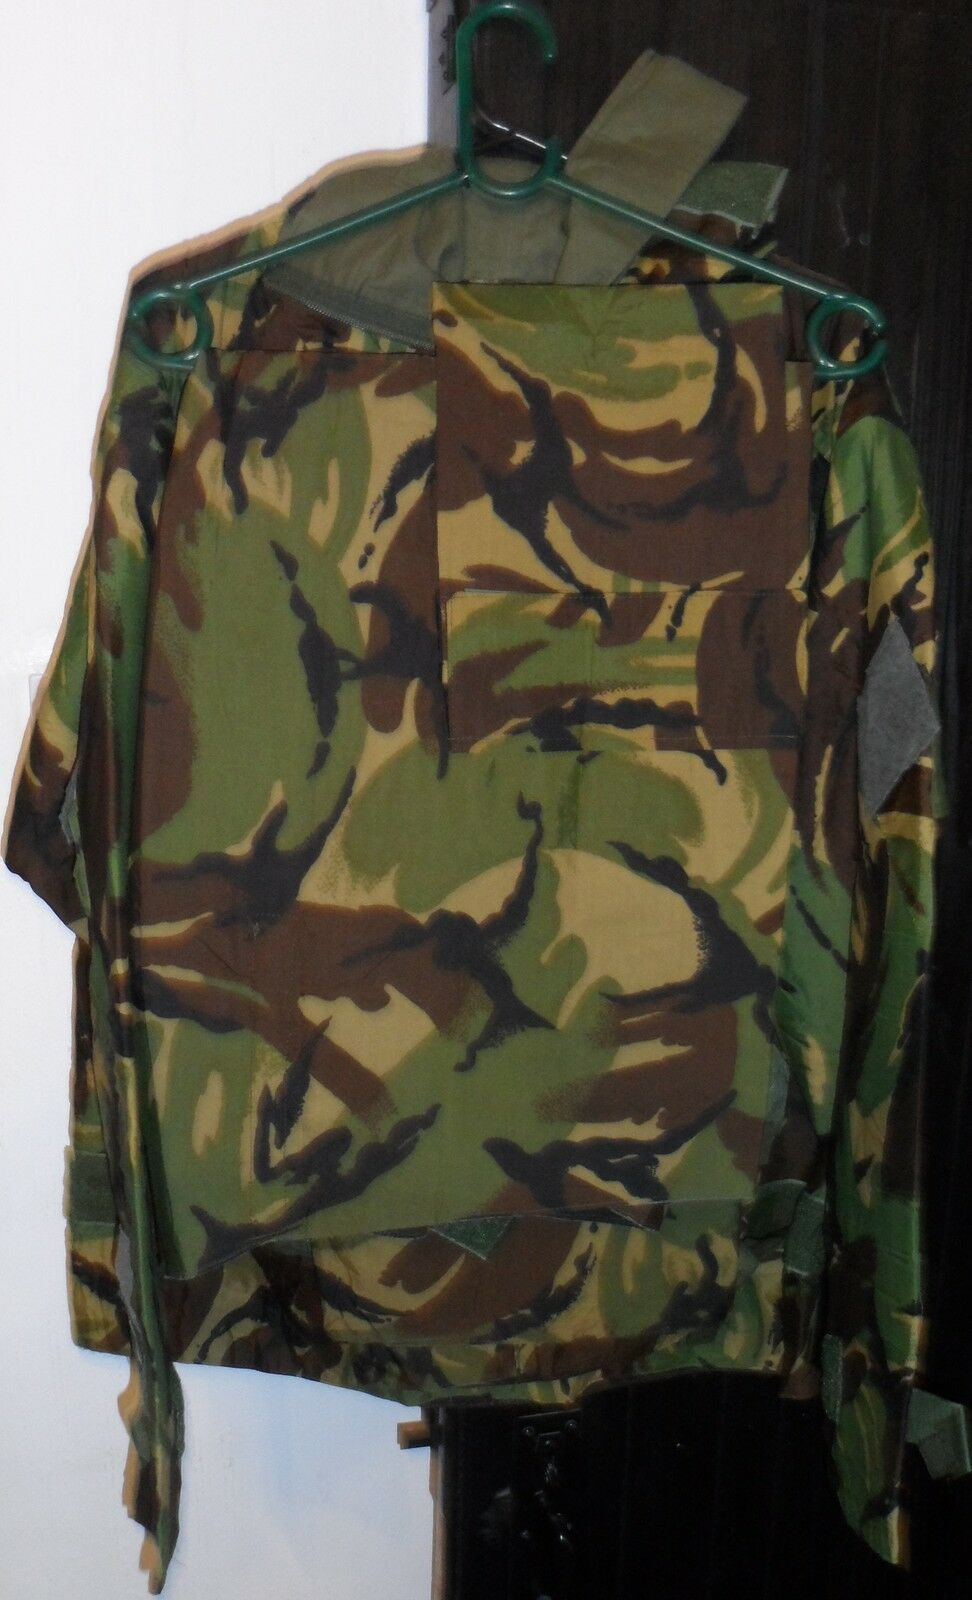 Cotton Fabric Camouflage Suit NATO Issue for Outdoor Sports L to XL